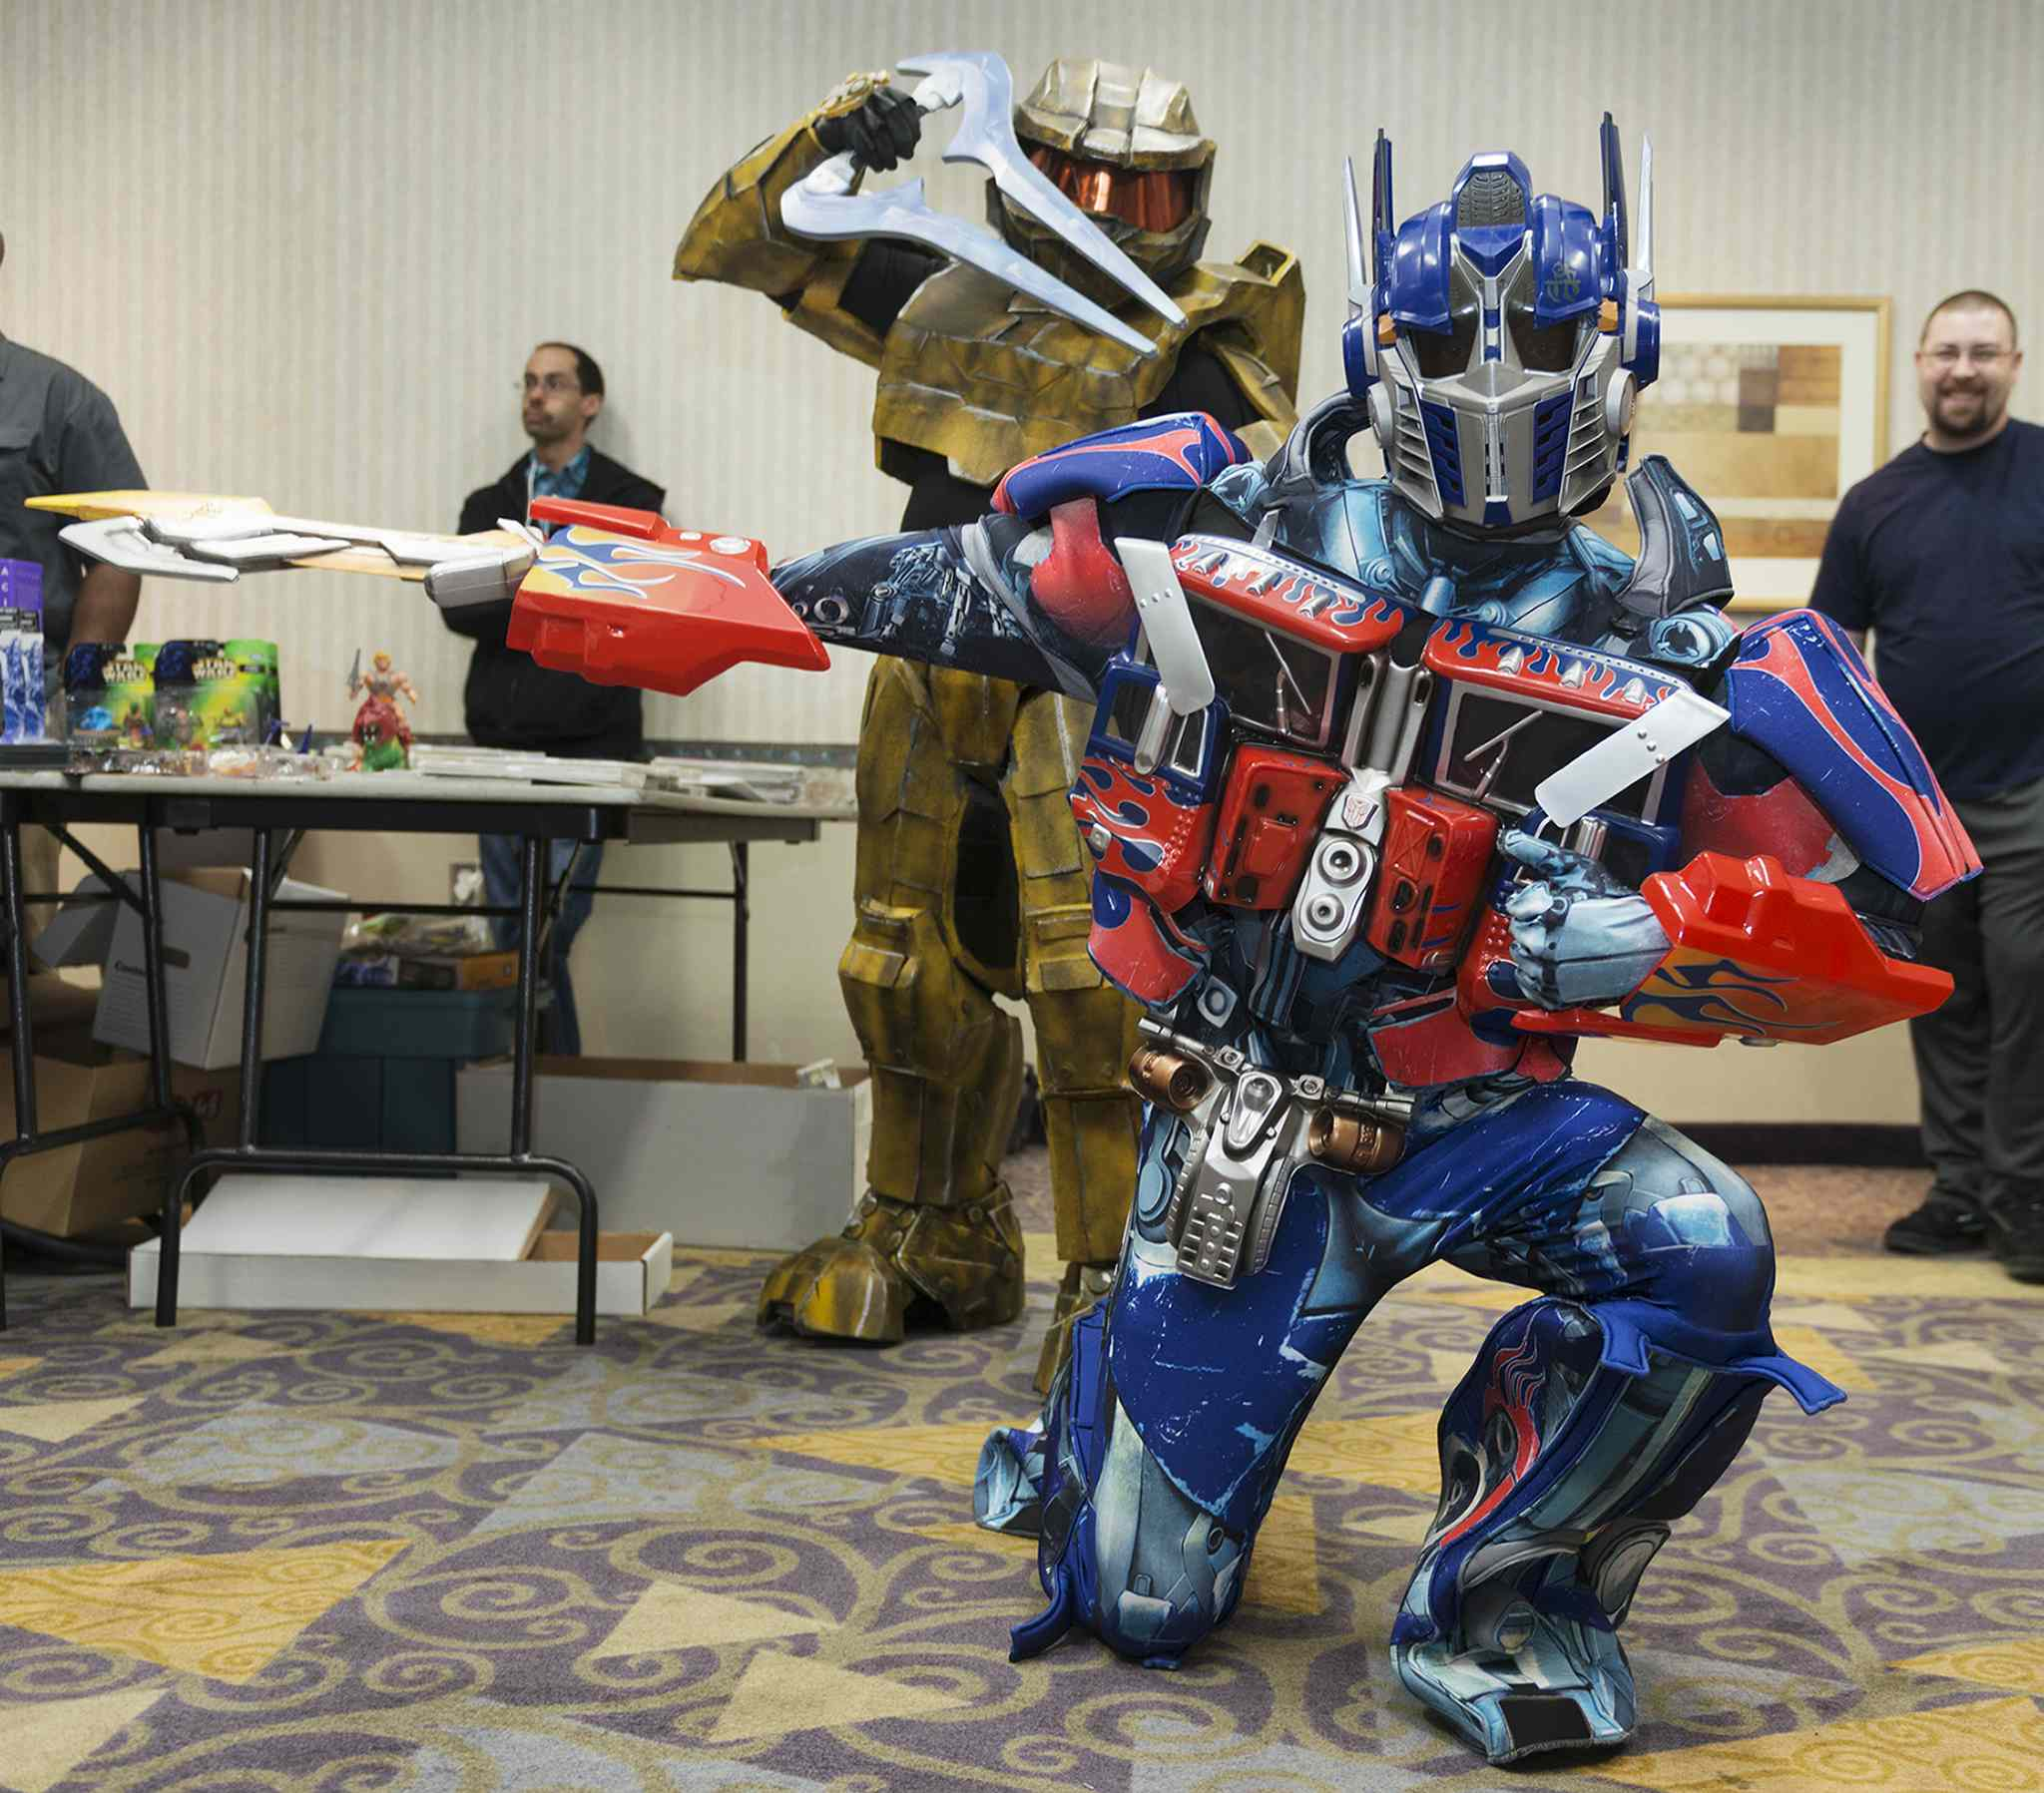 Gregory Marrast with Higher Functions Productions poses dressed up as Optimus Prime while James Antoine as Griff from Halo Red vs. Blue attacks at Saturday's Transformers Convention at the Clarion Hotel.